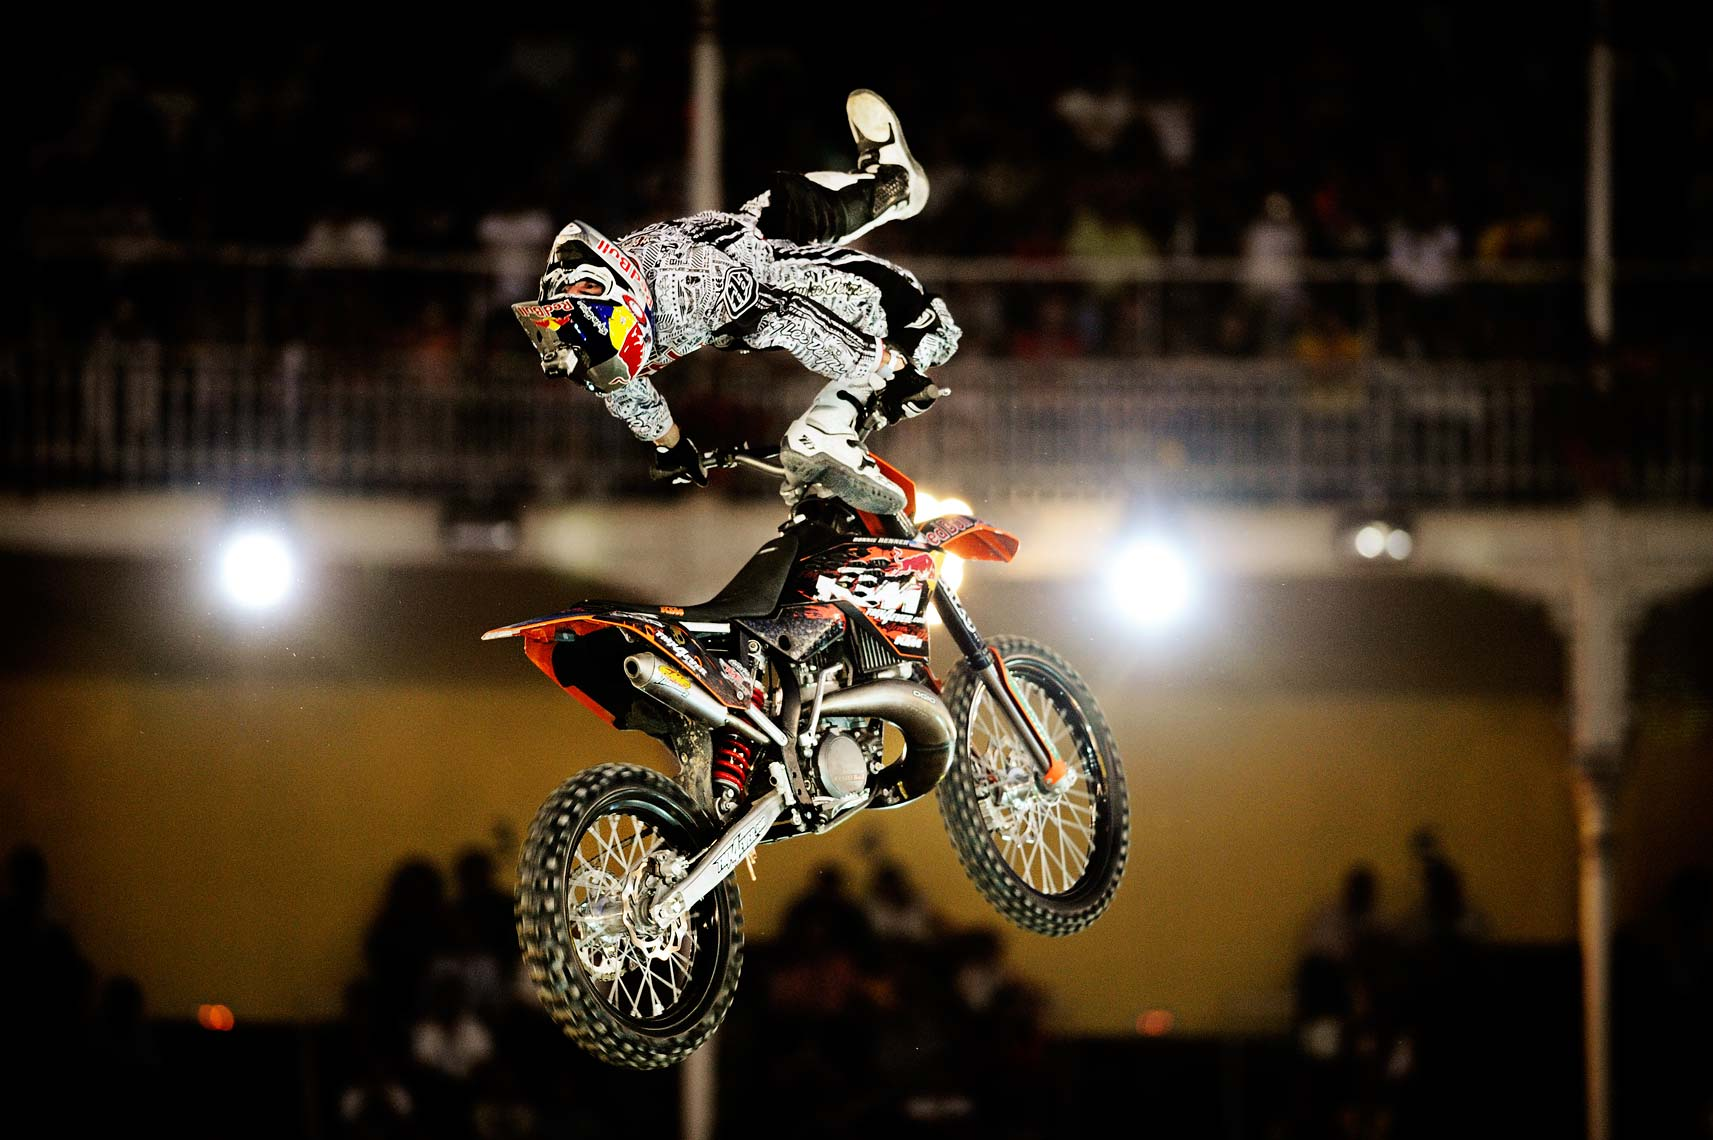 RD_180708_XFIGHTERS_MADRID_1272_ESH.jpg